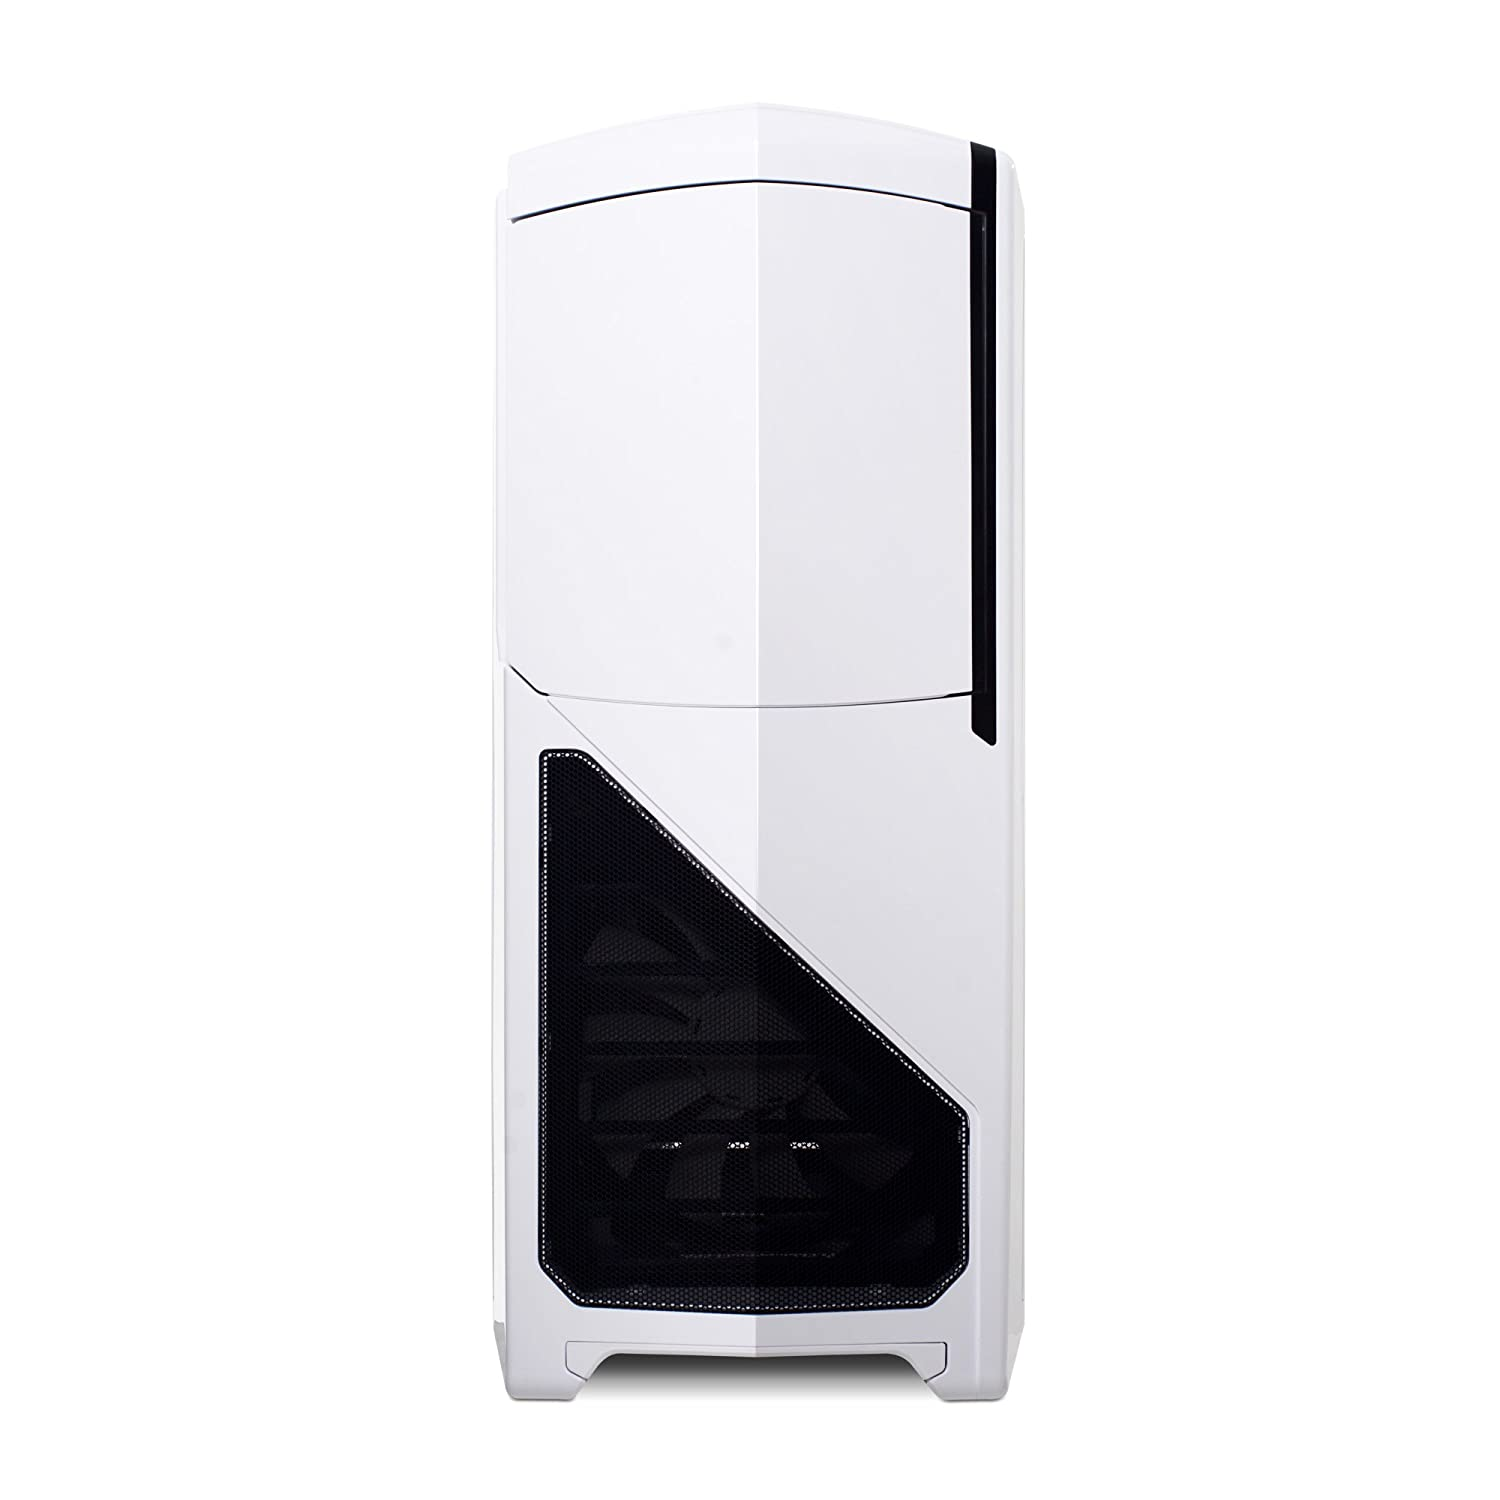 1st wedding anniversary gifts for him nzxt